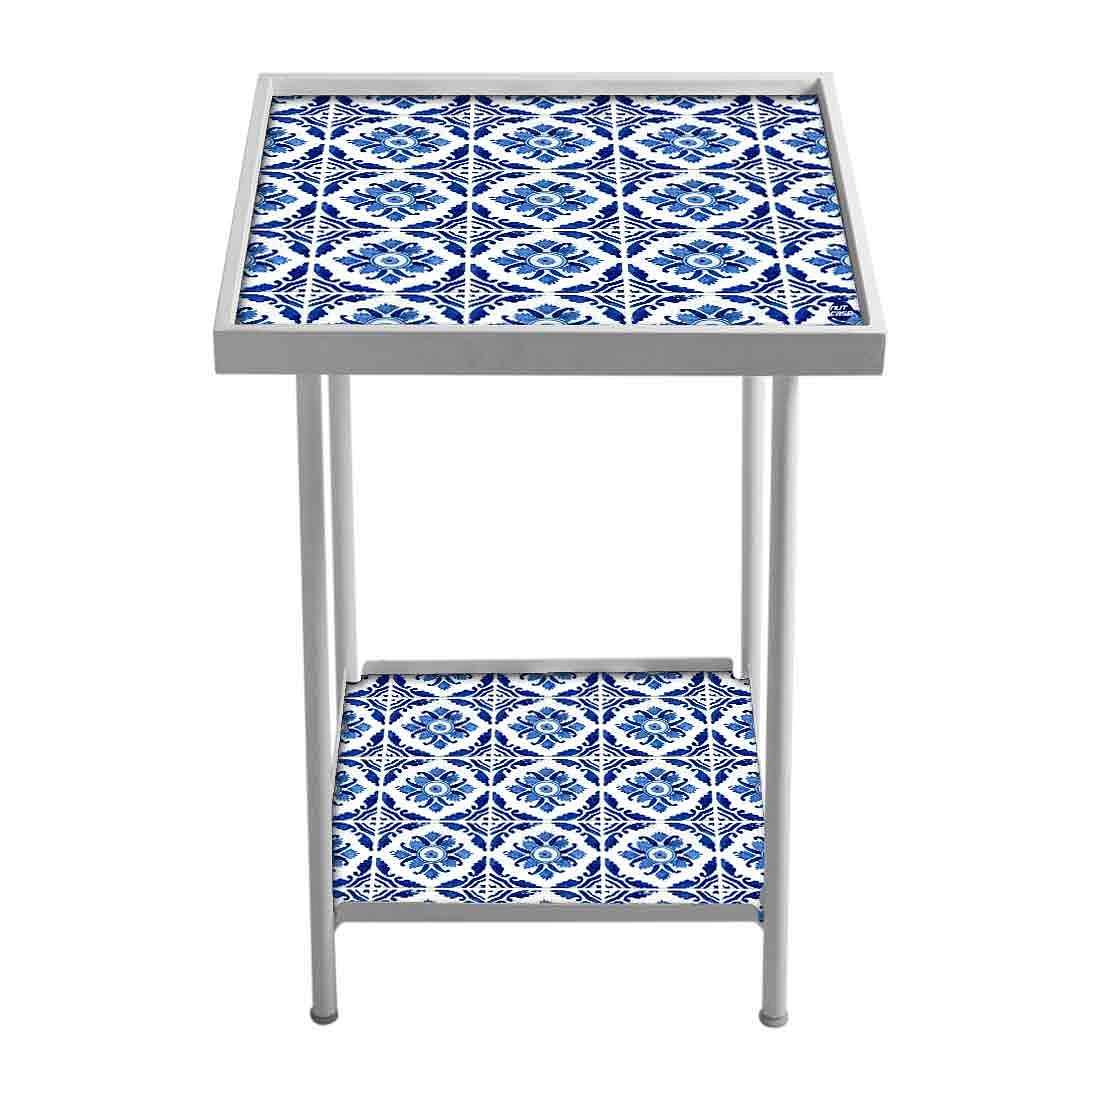 Designer Small Metal Side Table - Floral Art